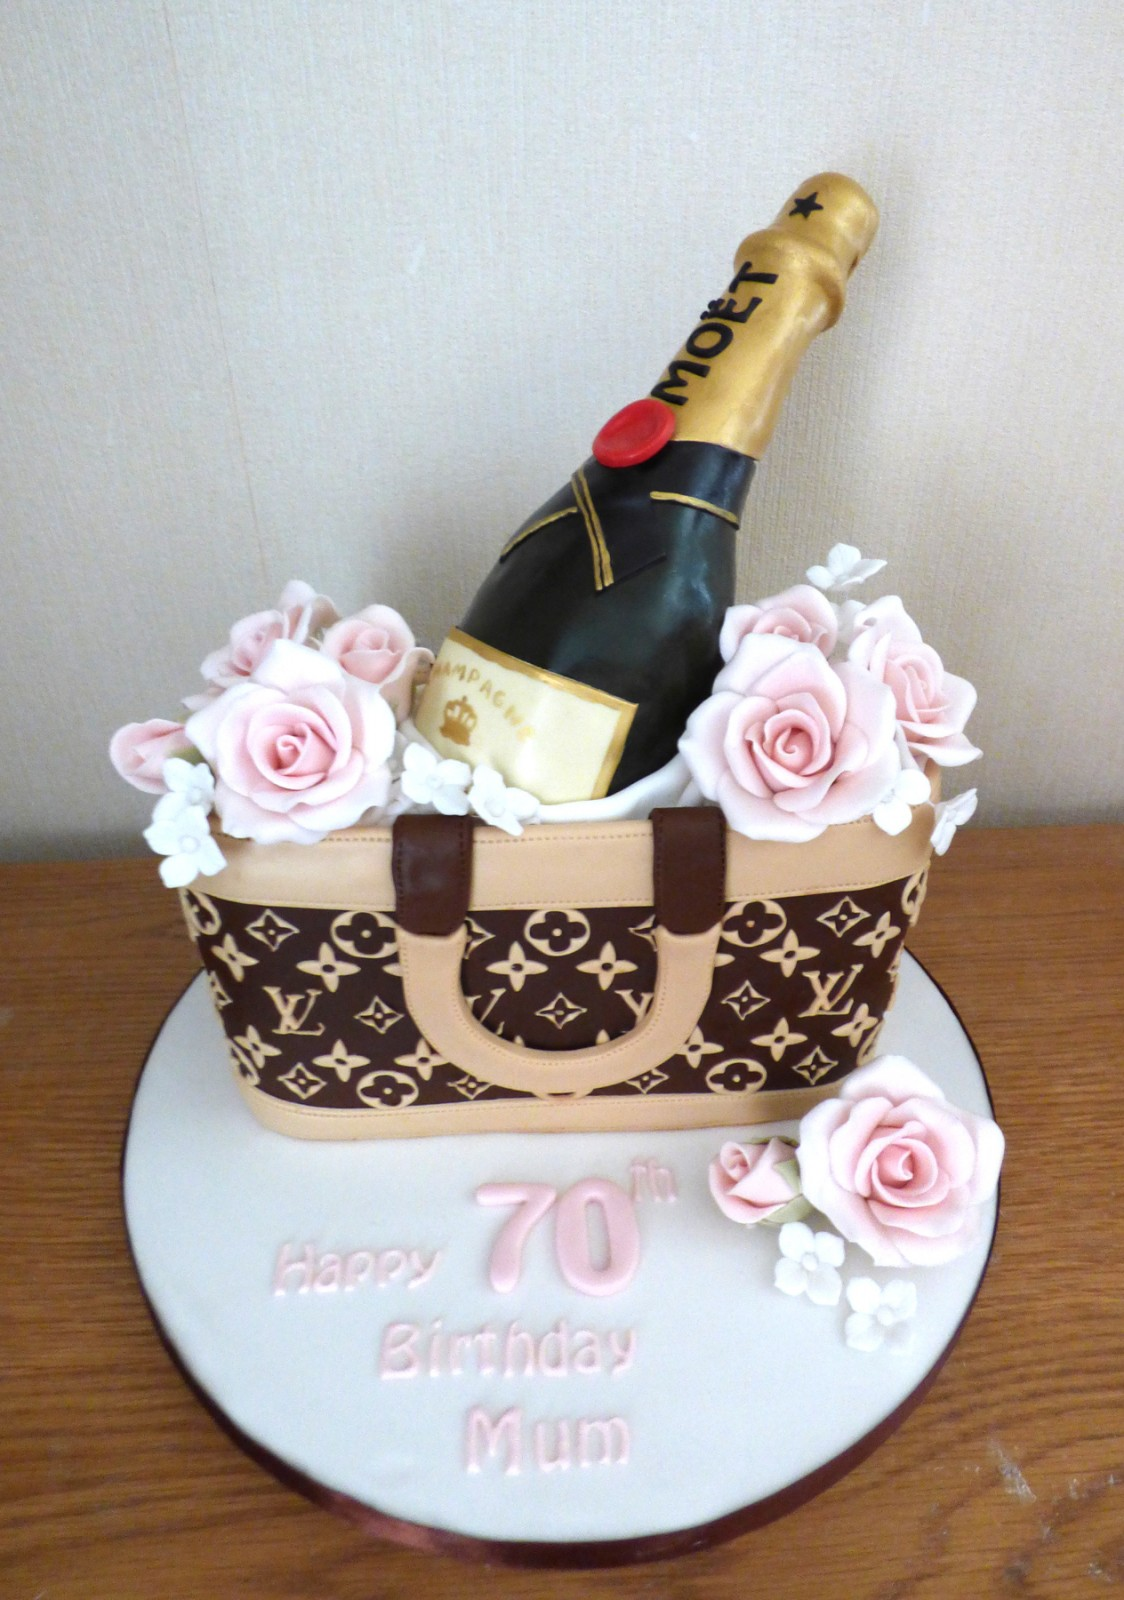 Cool Louis Vuitton Bag With Bottle Of Champagne And Roses Birthday Cake Birthday Cards Printable Benkemecafe Filternl